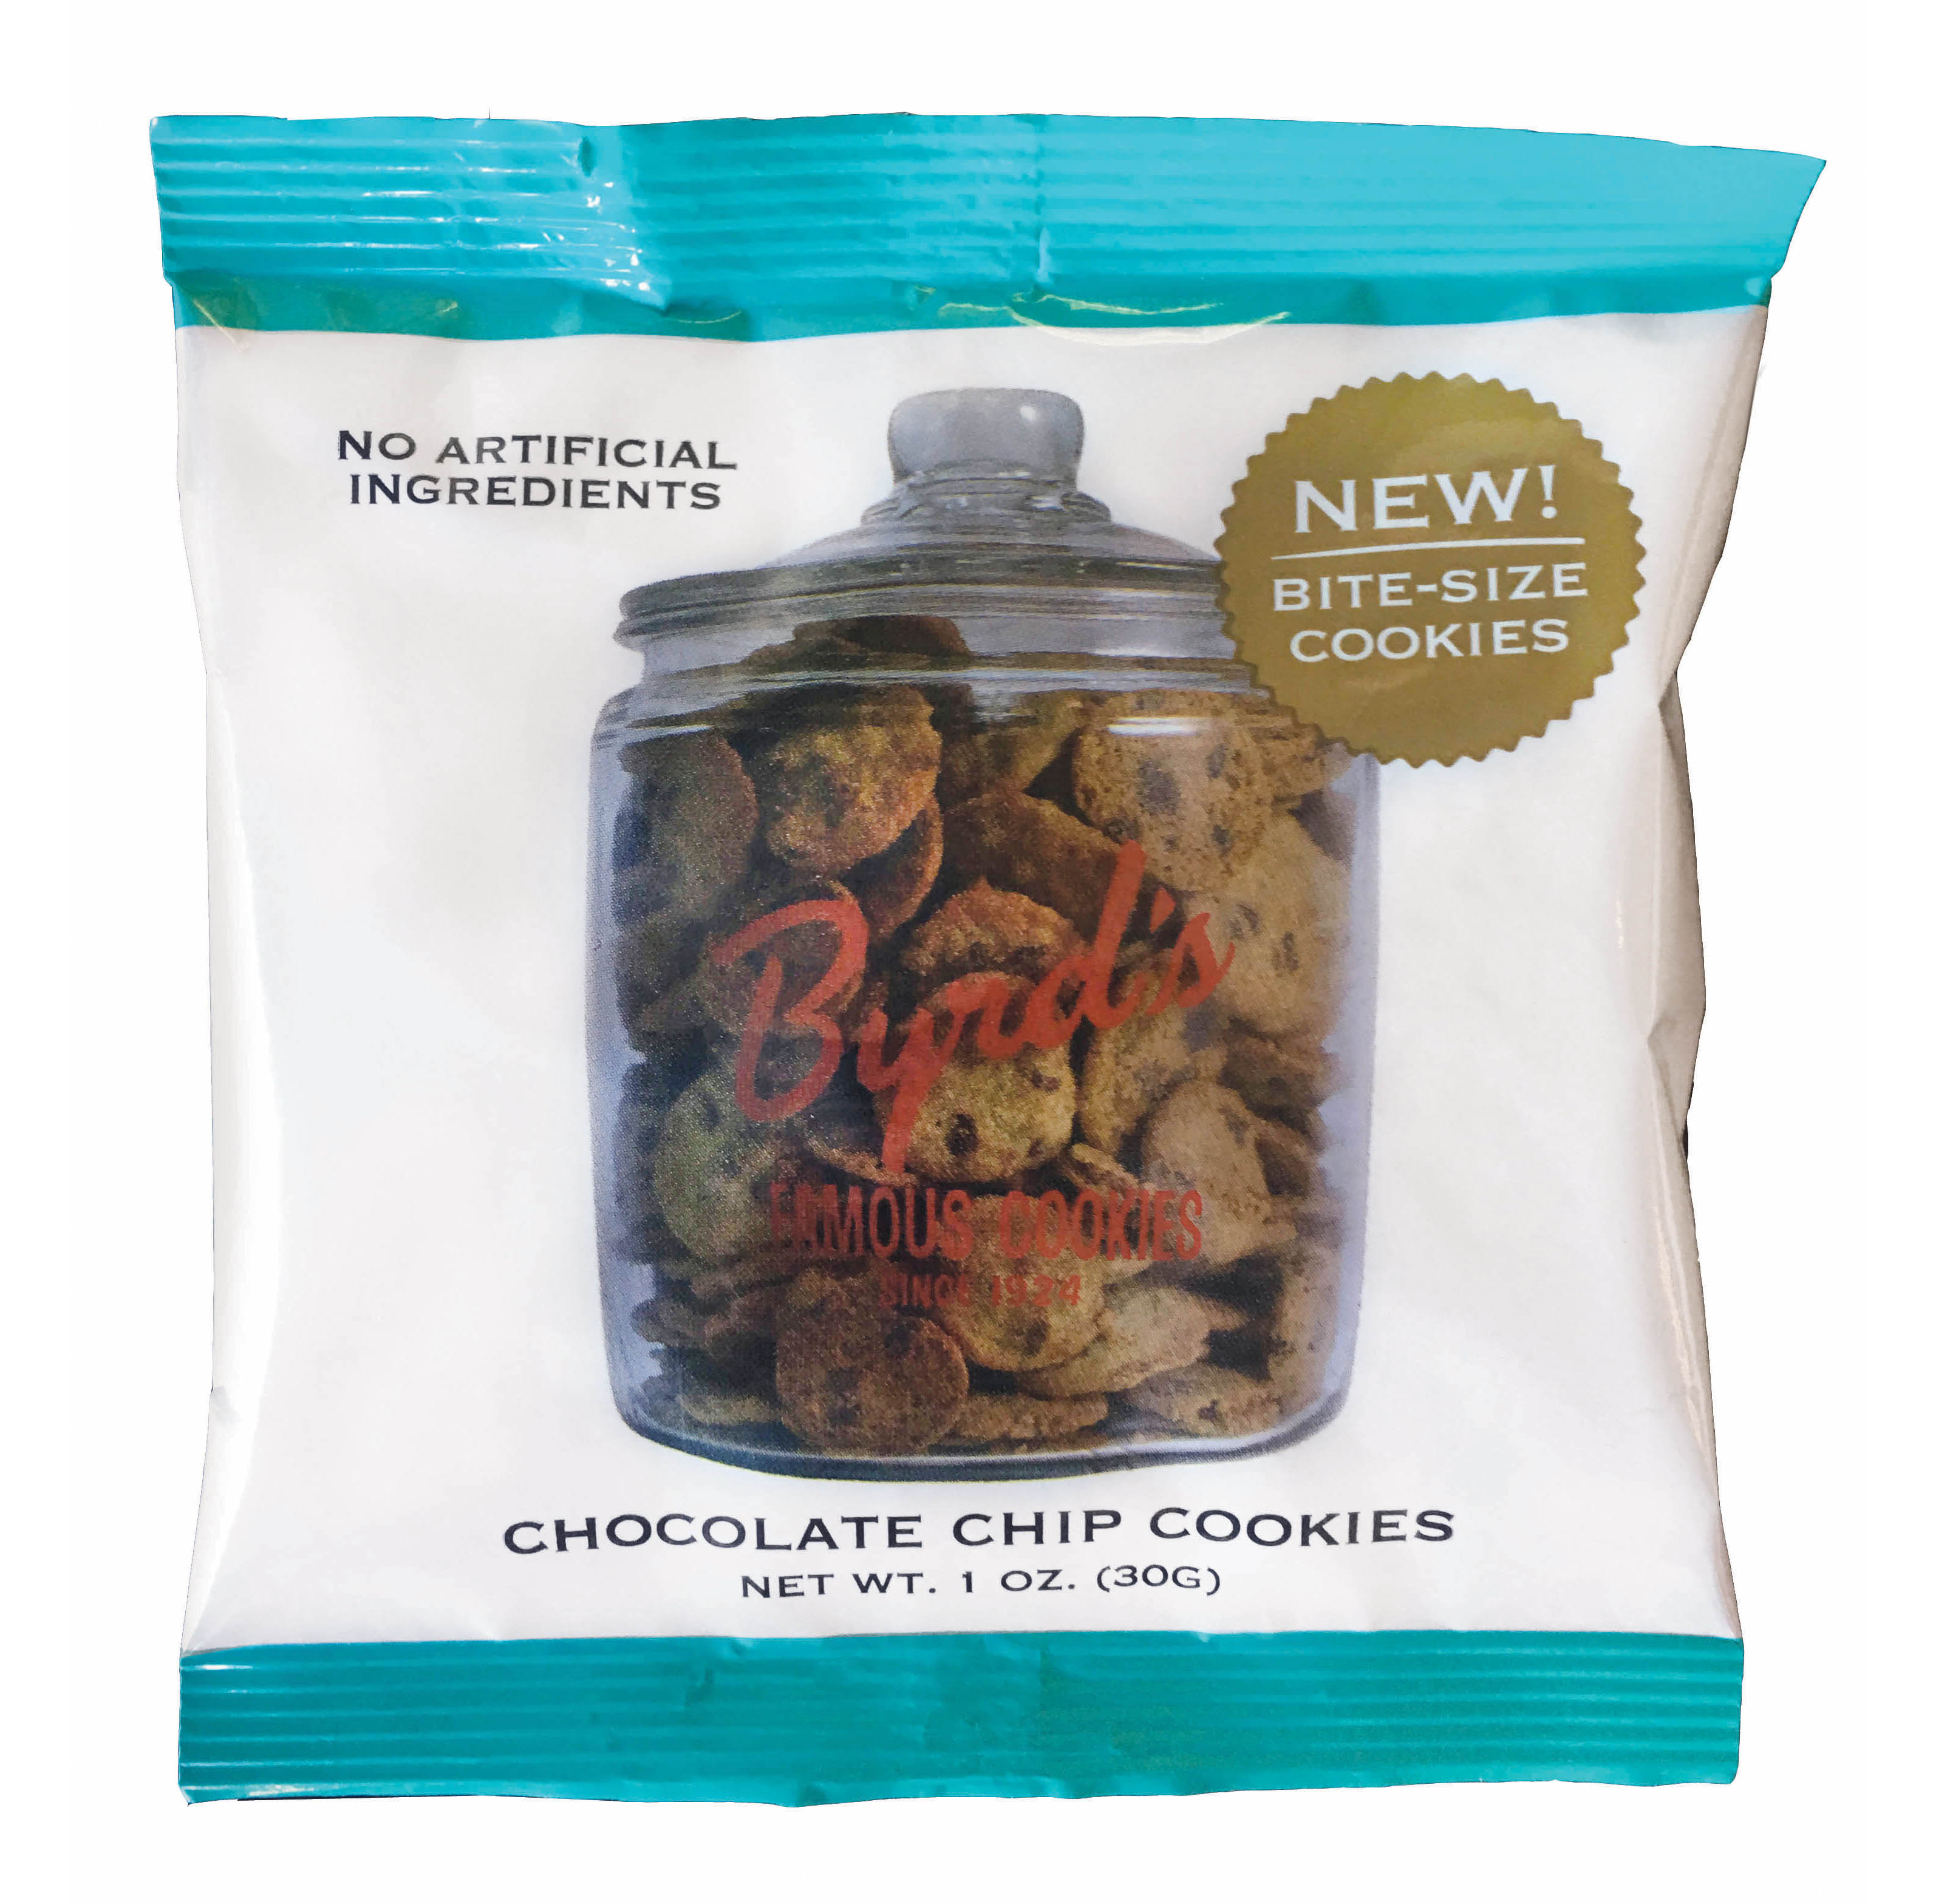 Chocolate Chip Cookie 1 oz Snack Pack (50 ct.)